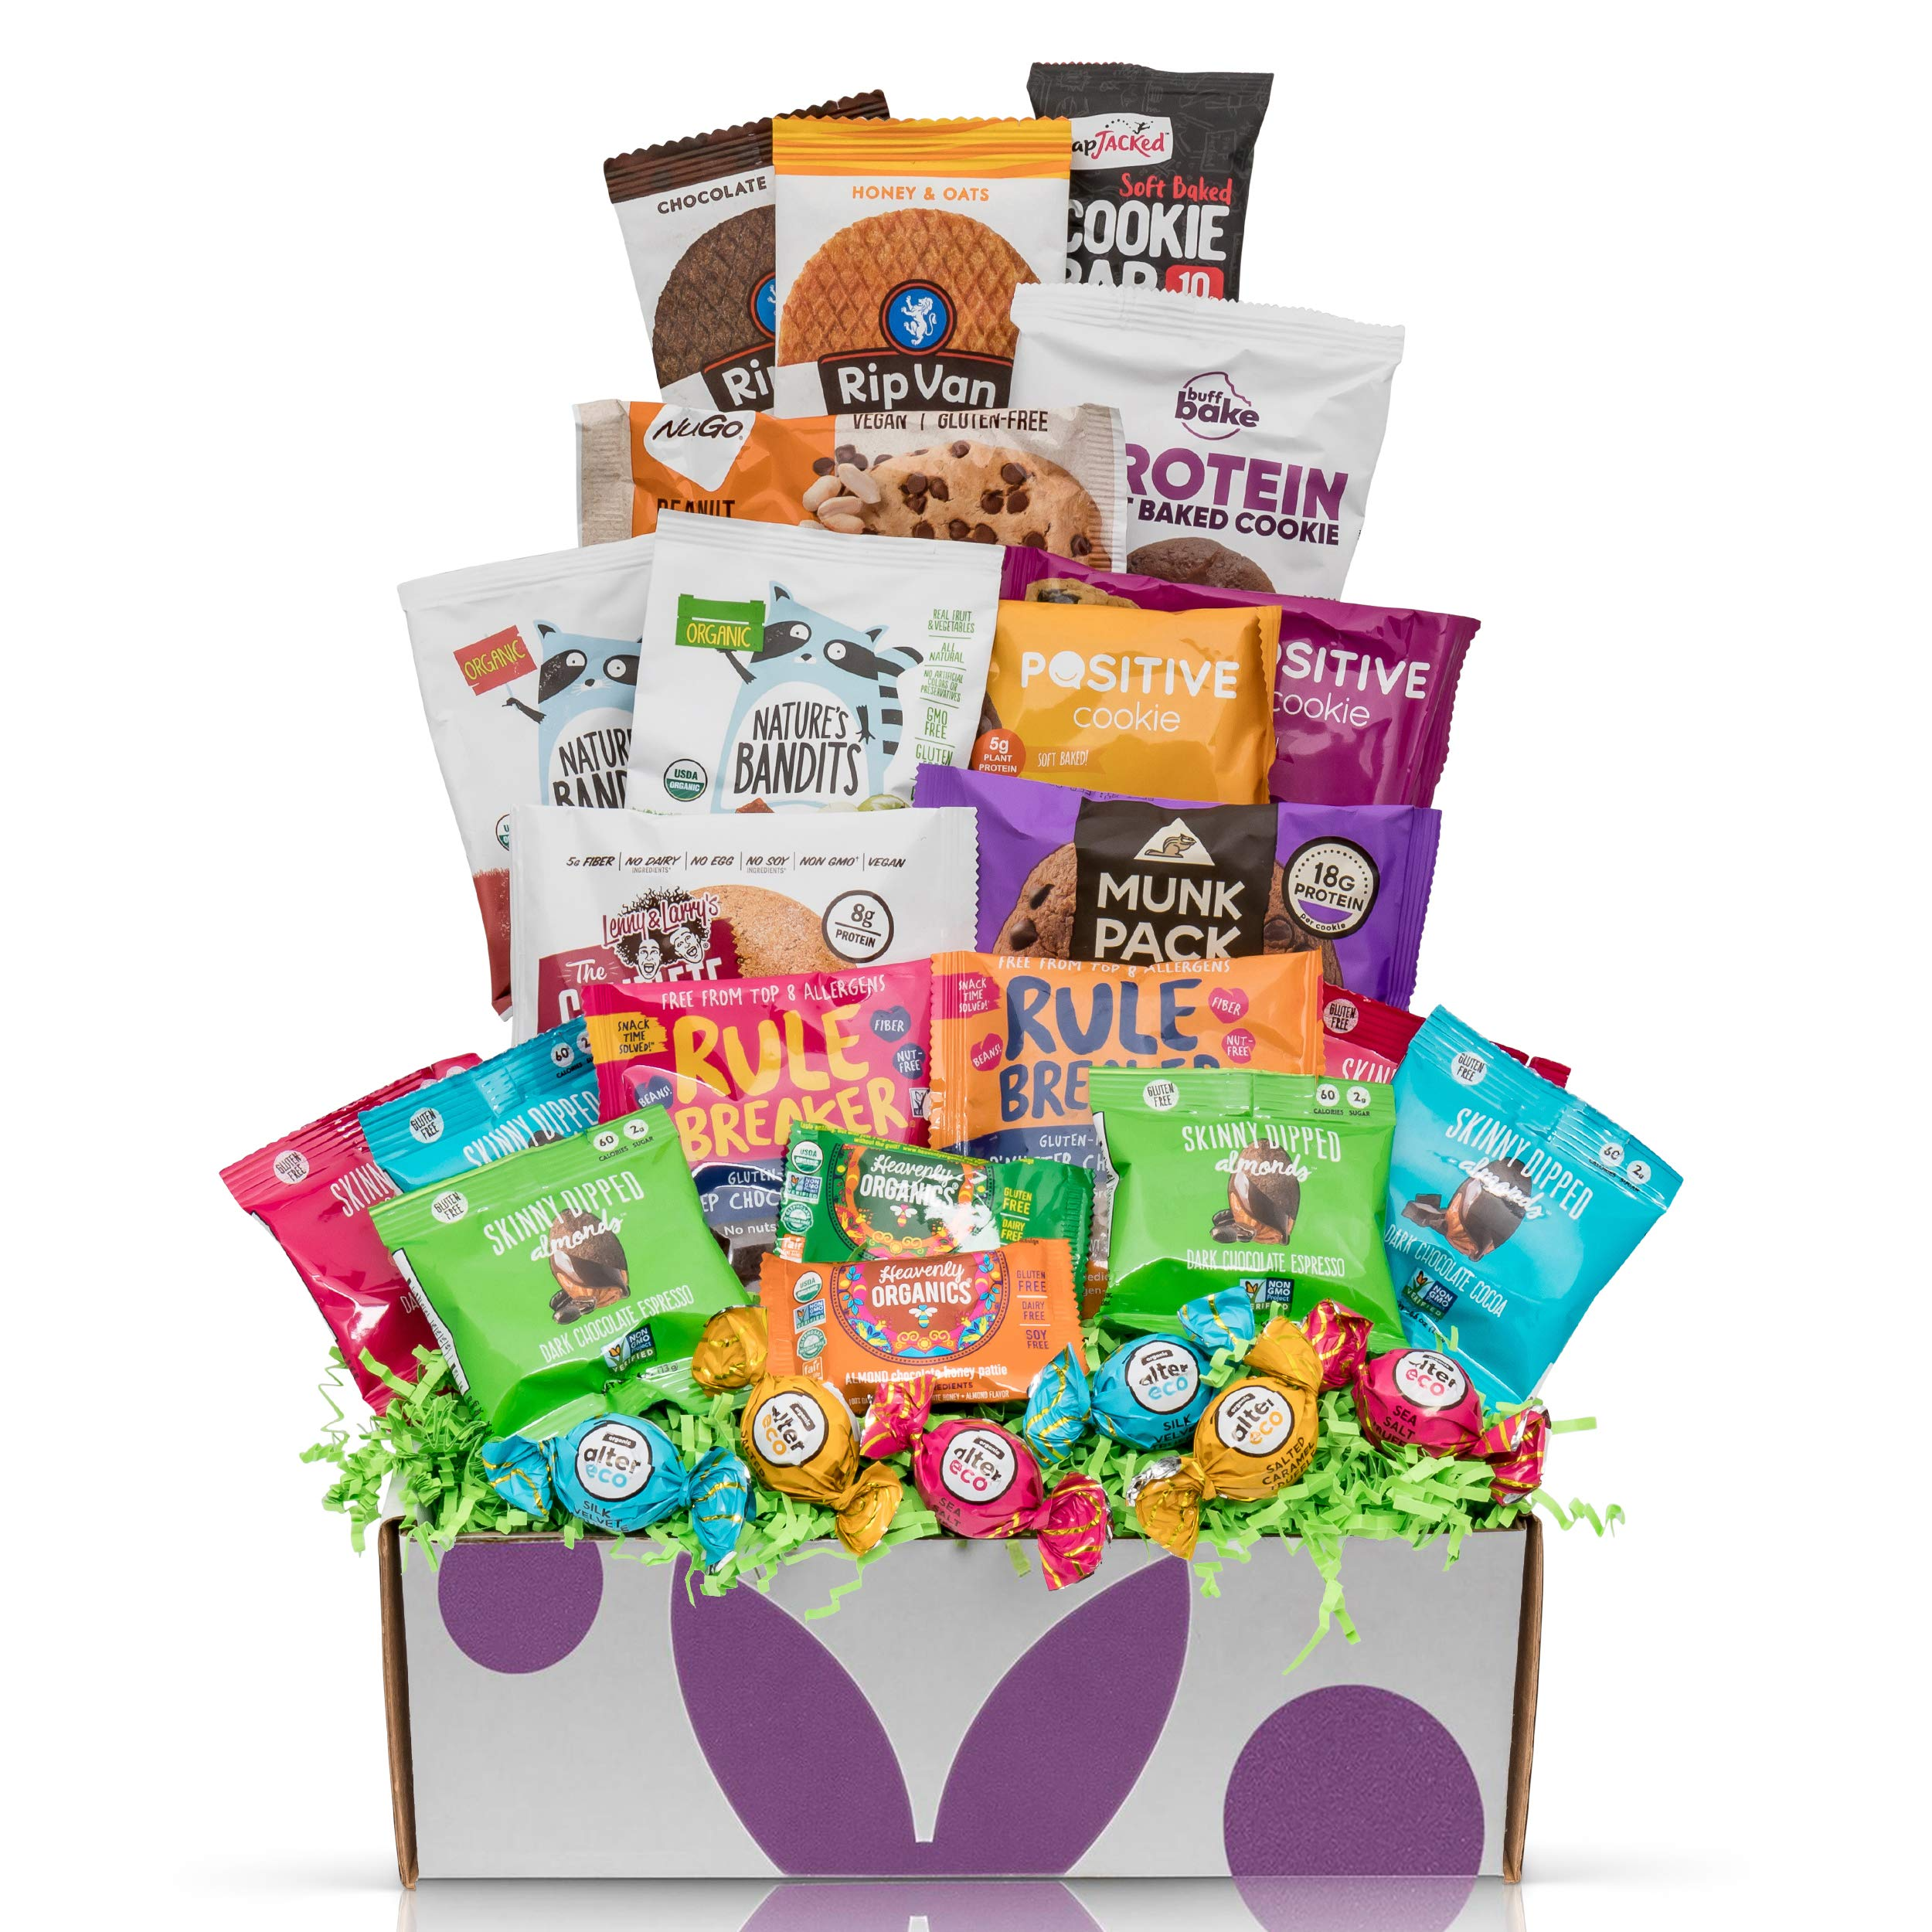 Happy Birthday Gift, Natural, Organic, Non-Gmo Verified, Healthy Snacks Assortment, Gourmet Food Gift Basket (28 Count)